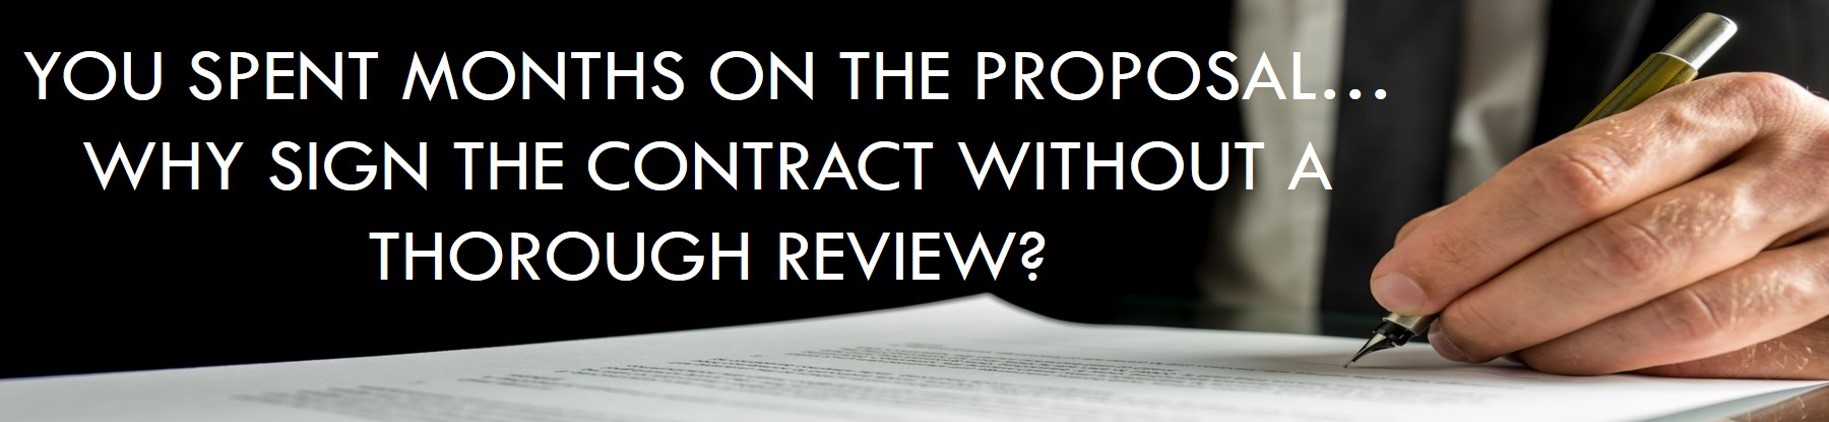 government contract reviews